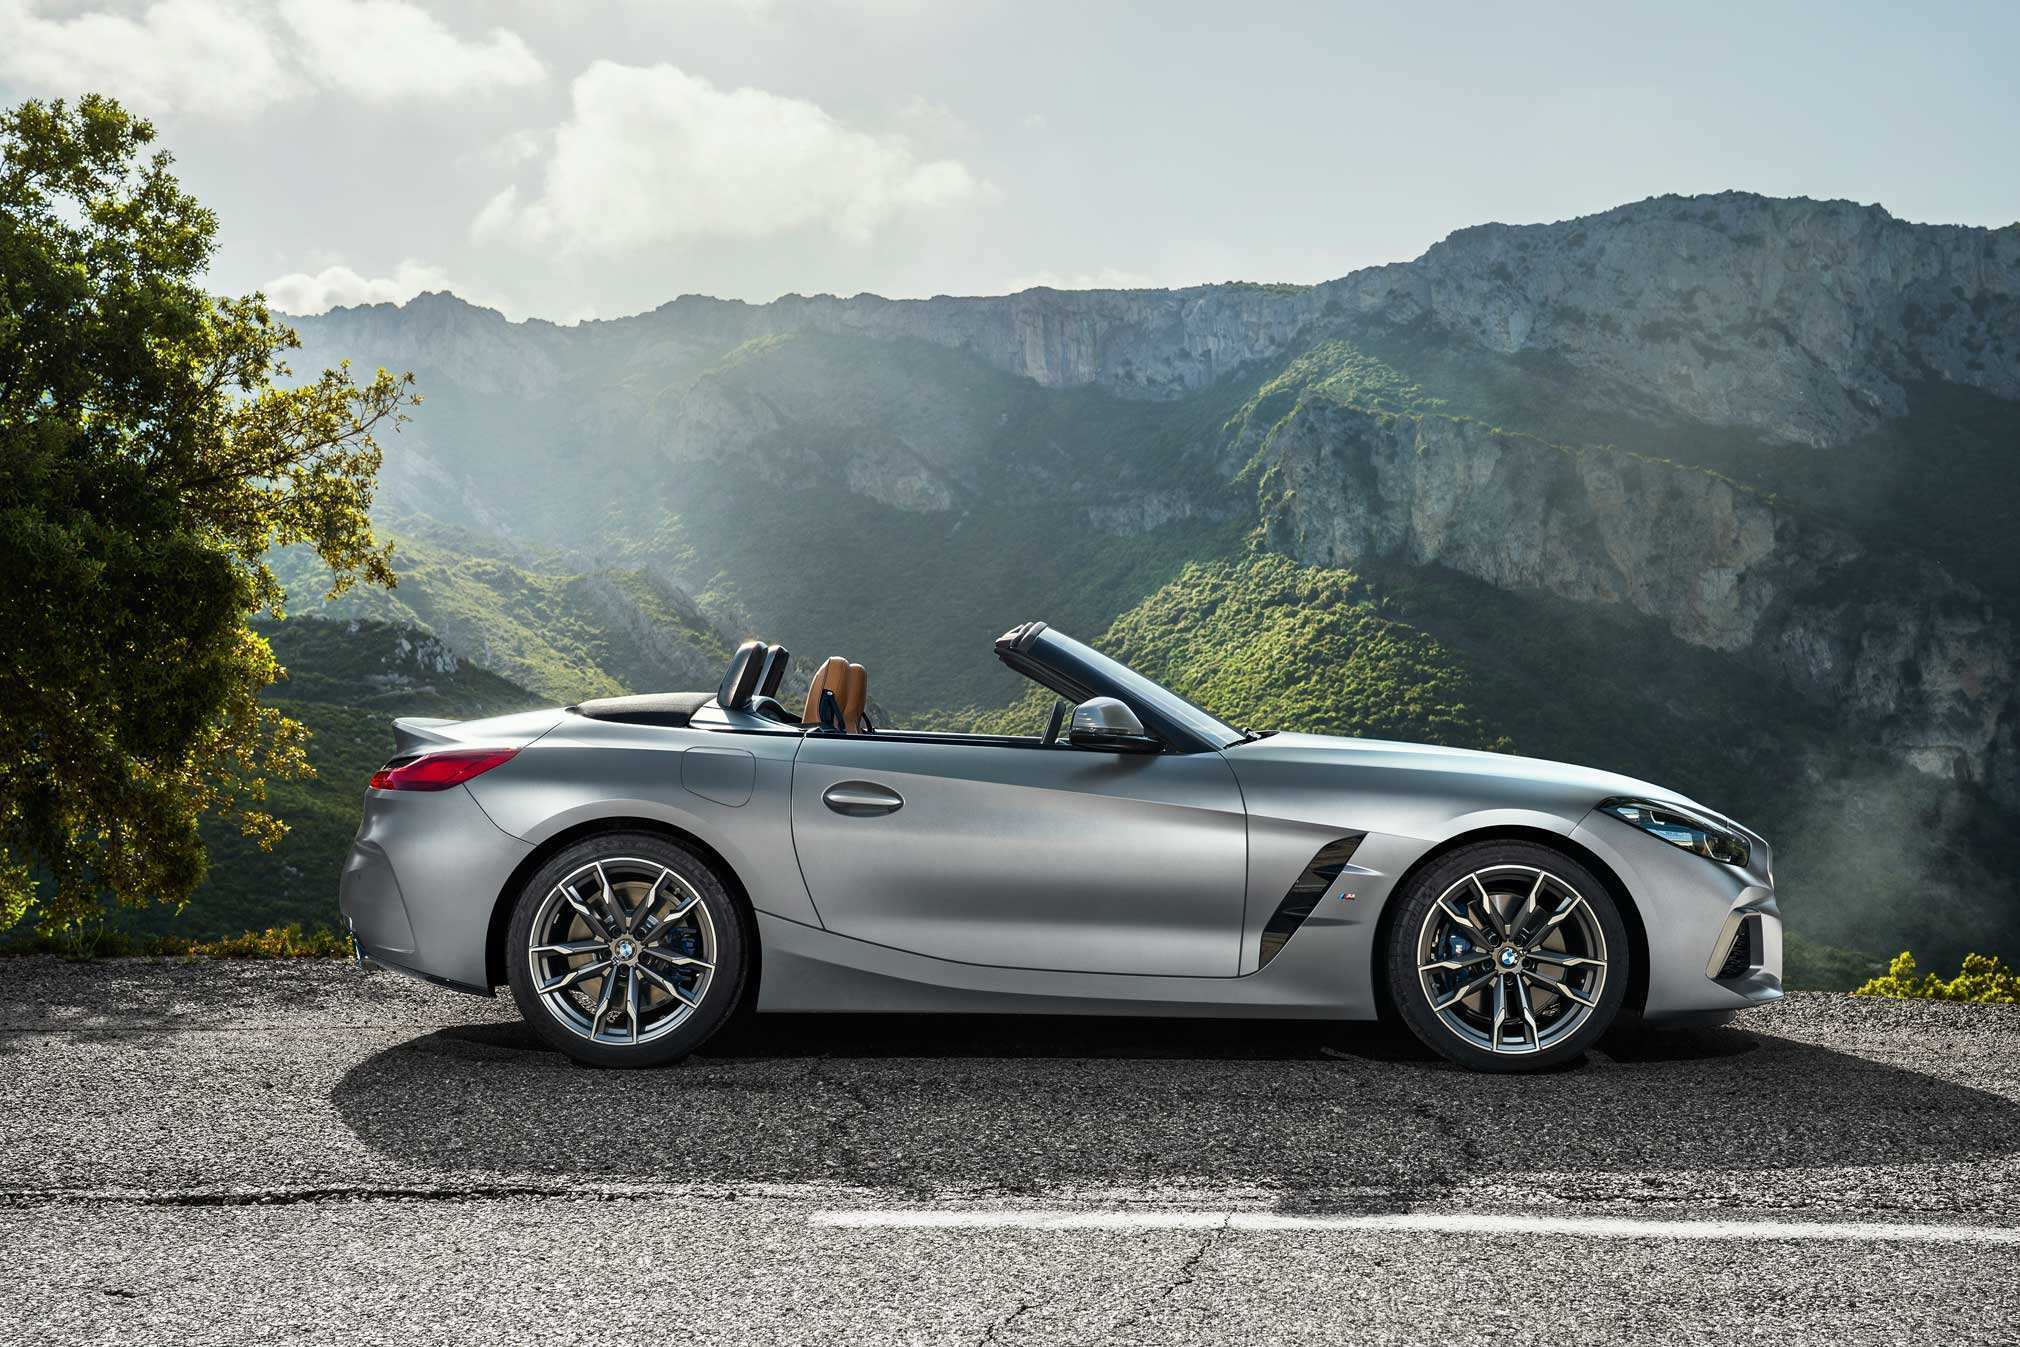 95 The 2020 BMW Z4 Roadster Photos